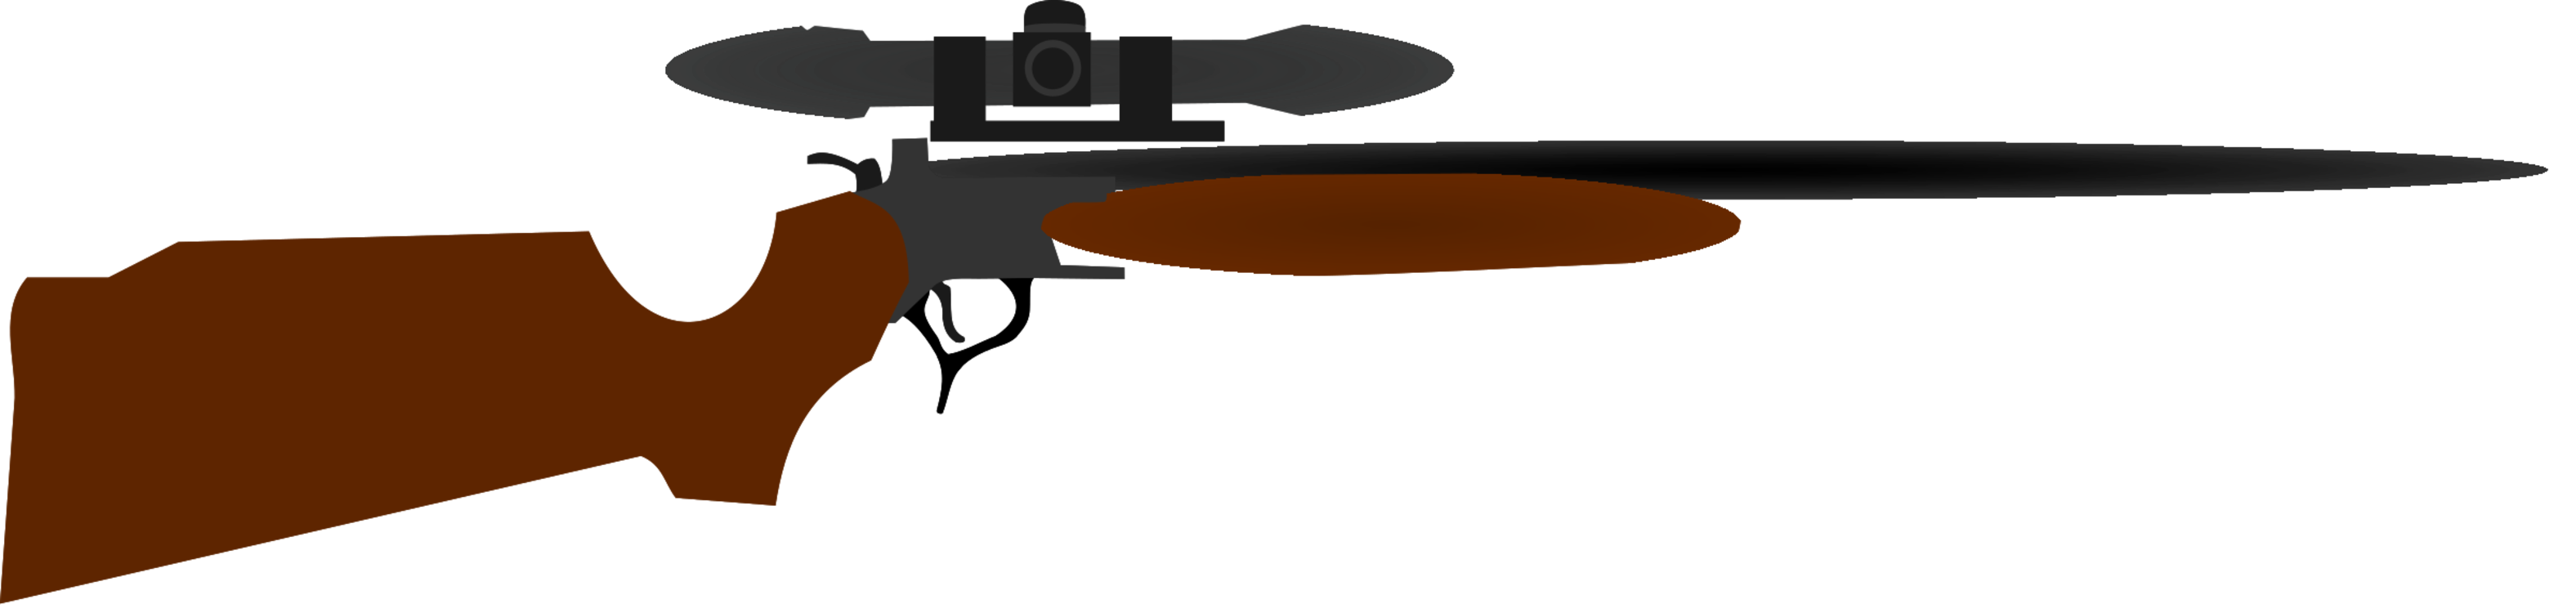 Shooting clipart real gun. Rifle hunting weapon firearm